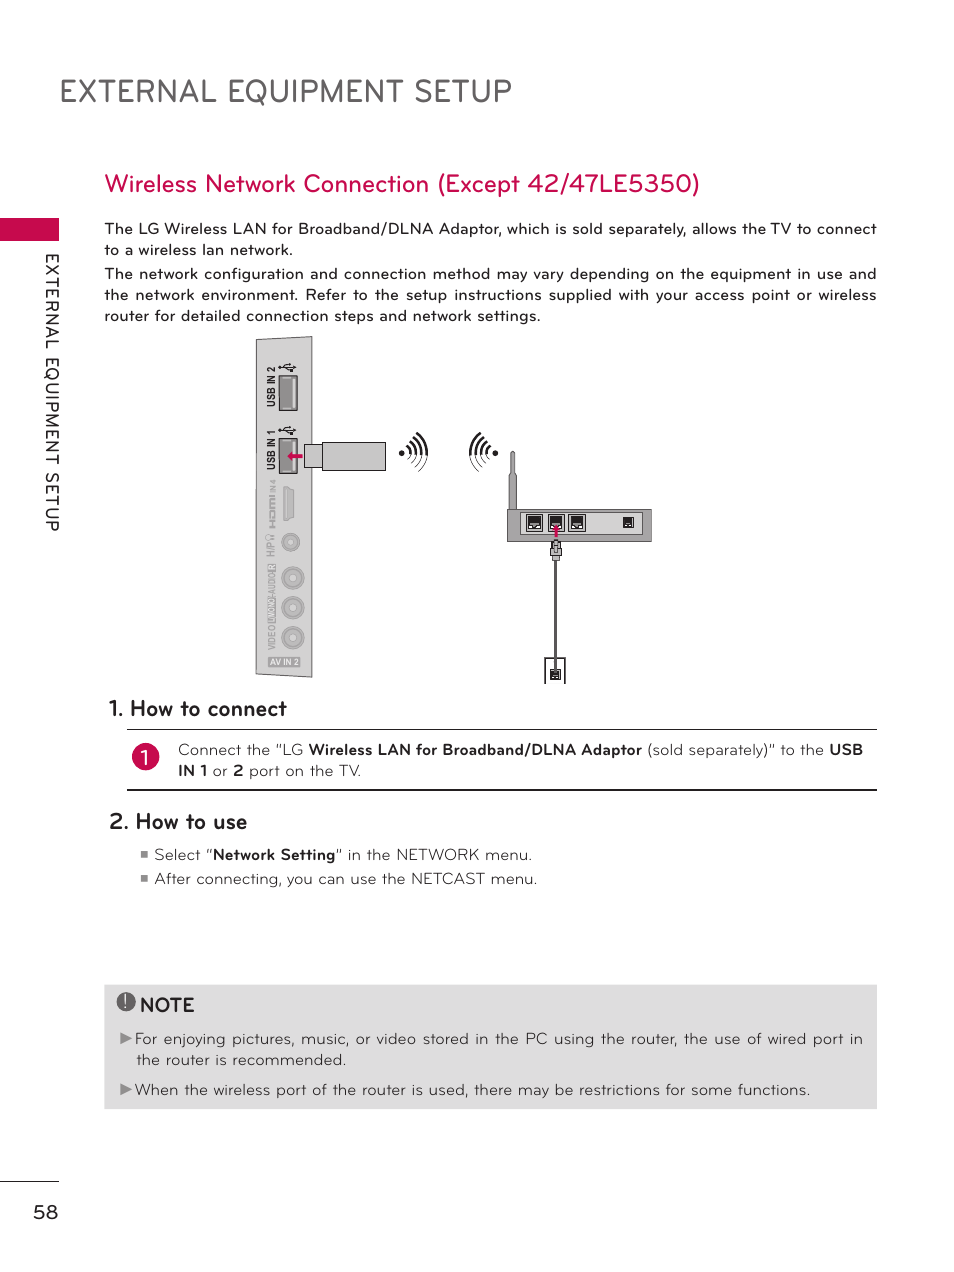 medium resolution of wireless network connection external equipment setup how to connect lg 50pz550 user manual page 58 206